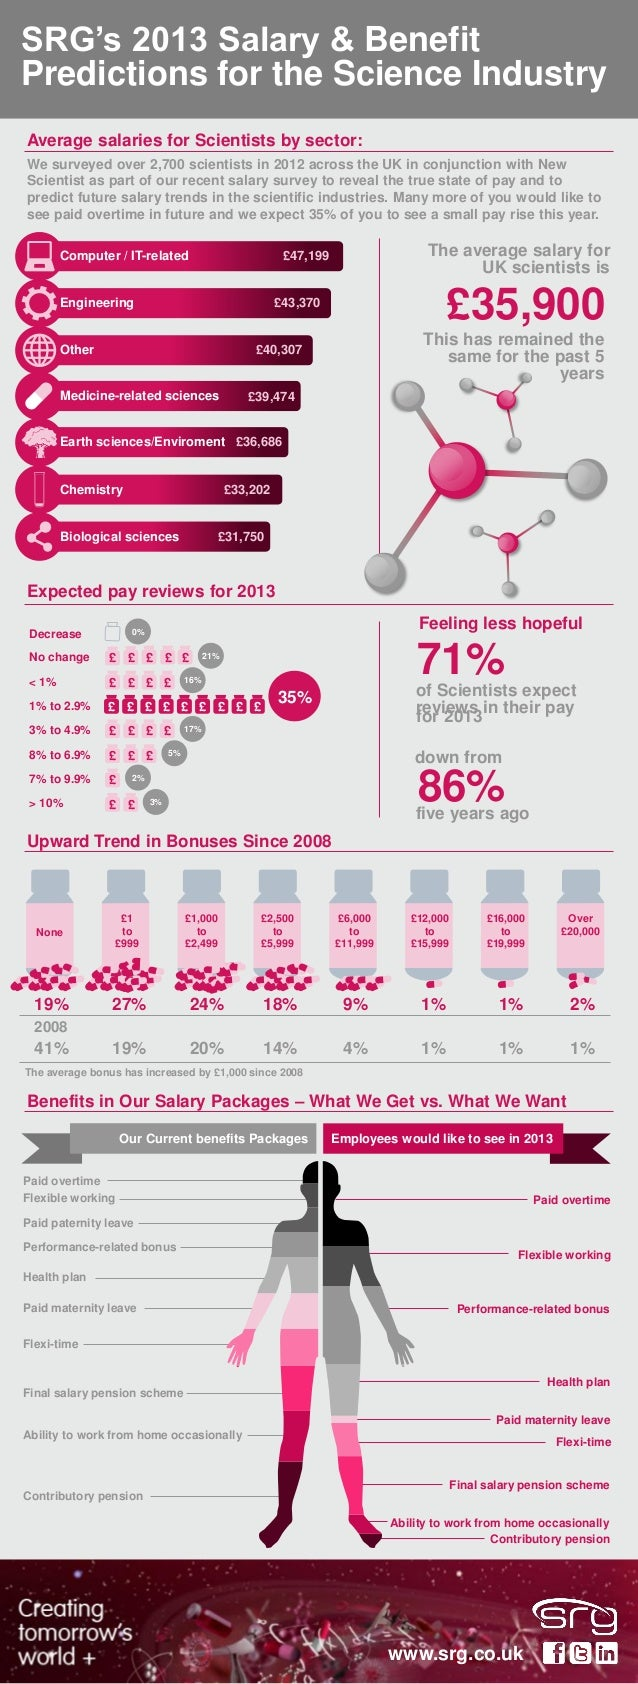 SRG's 2013 Salary & Benefit Predictions for the Science Industry Computer / IT-related £47,199 Engineering £43,370 Other £...